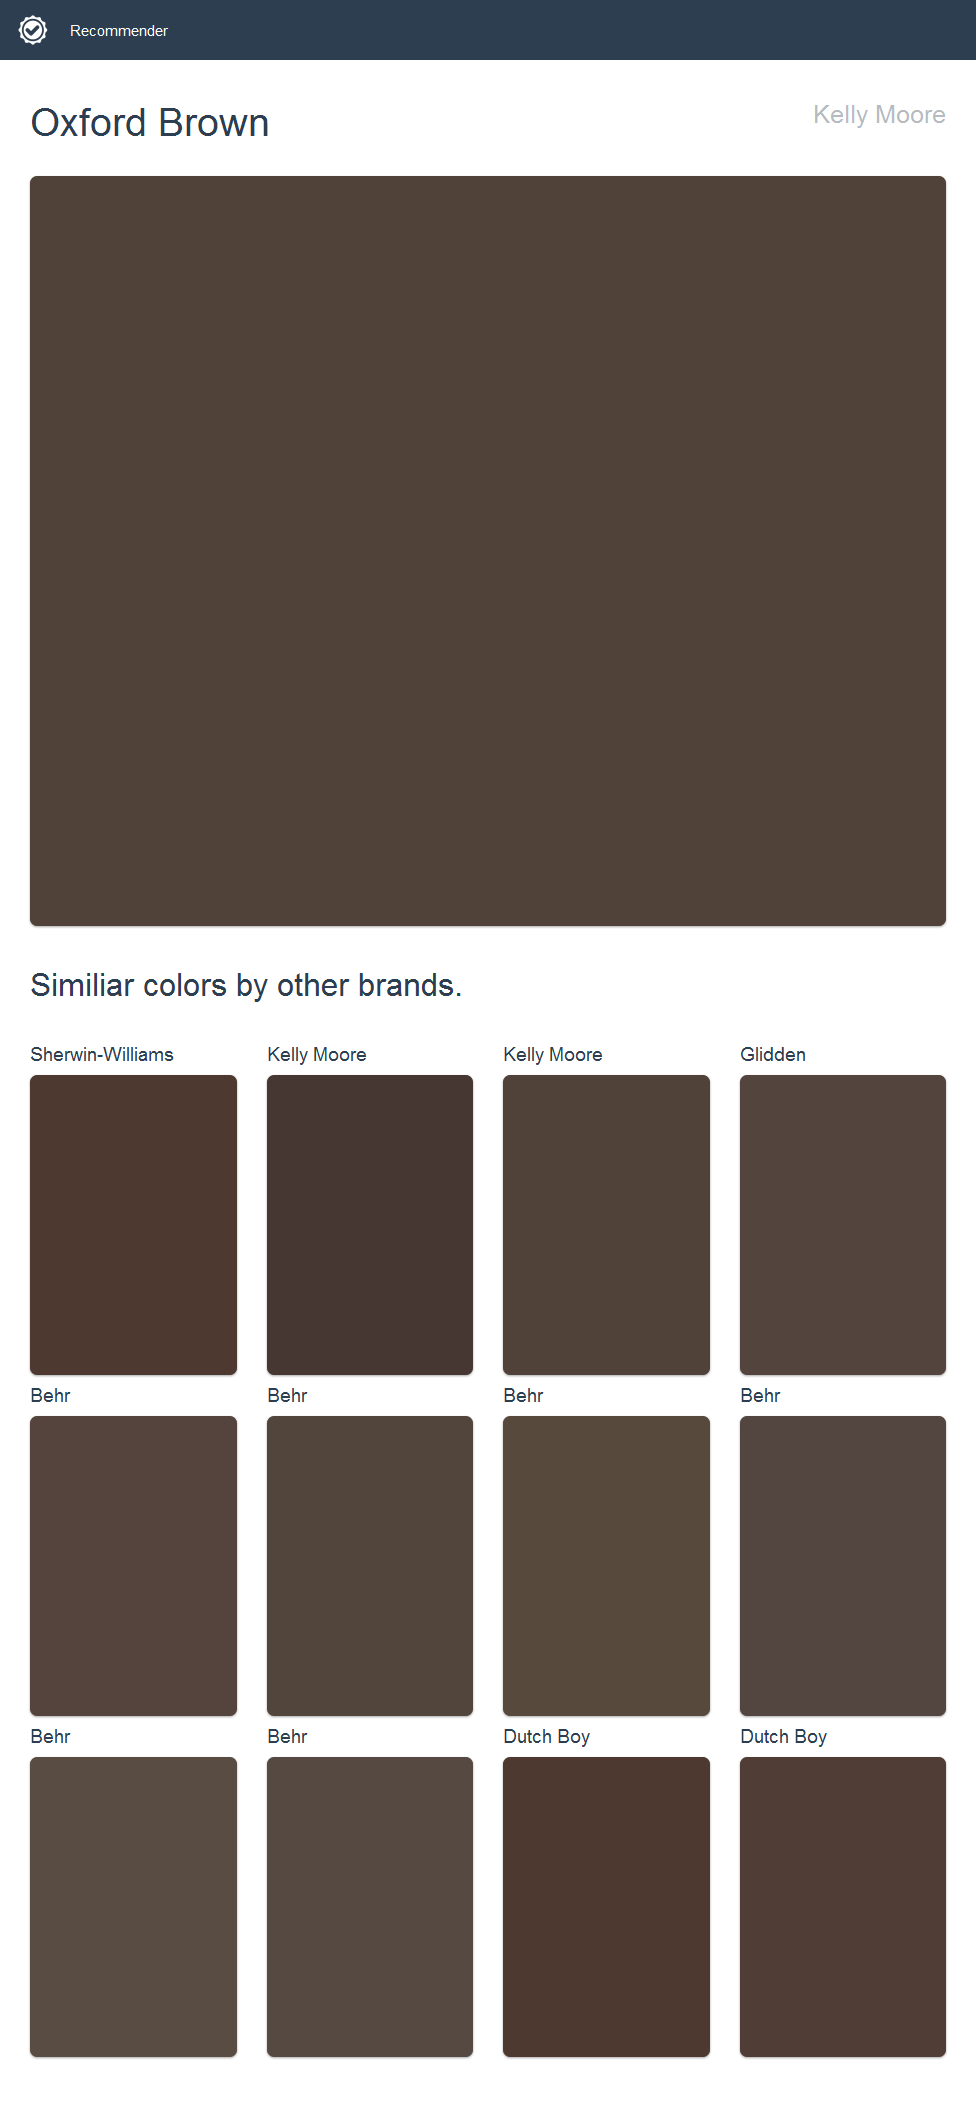 Oxford Brown Kelly Moore Click The Image To See Similiar Colors By Other Brands